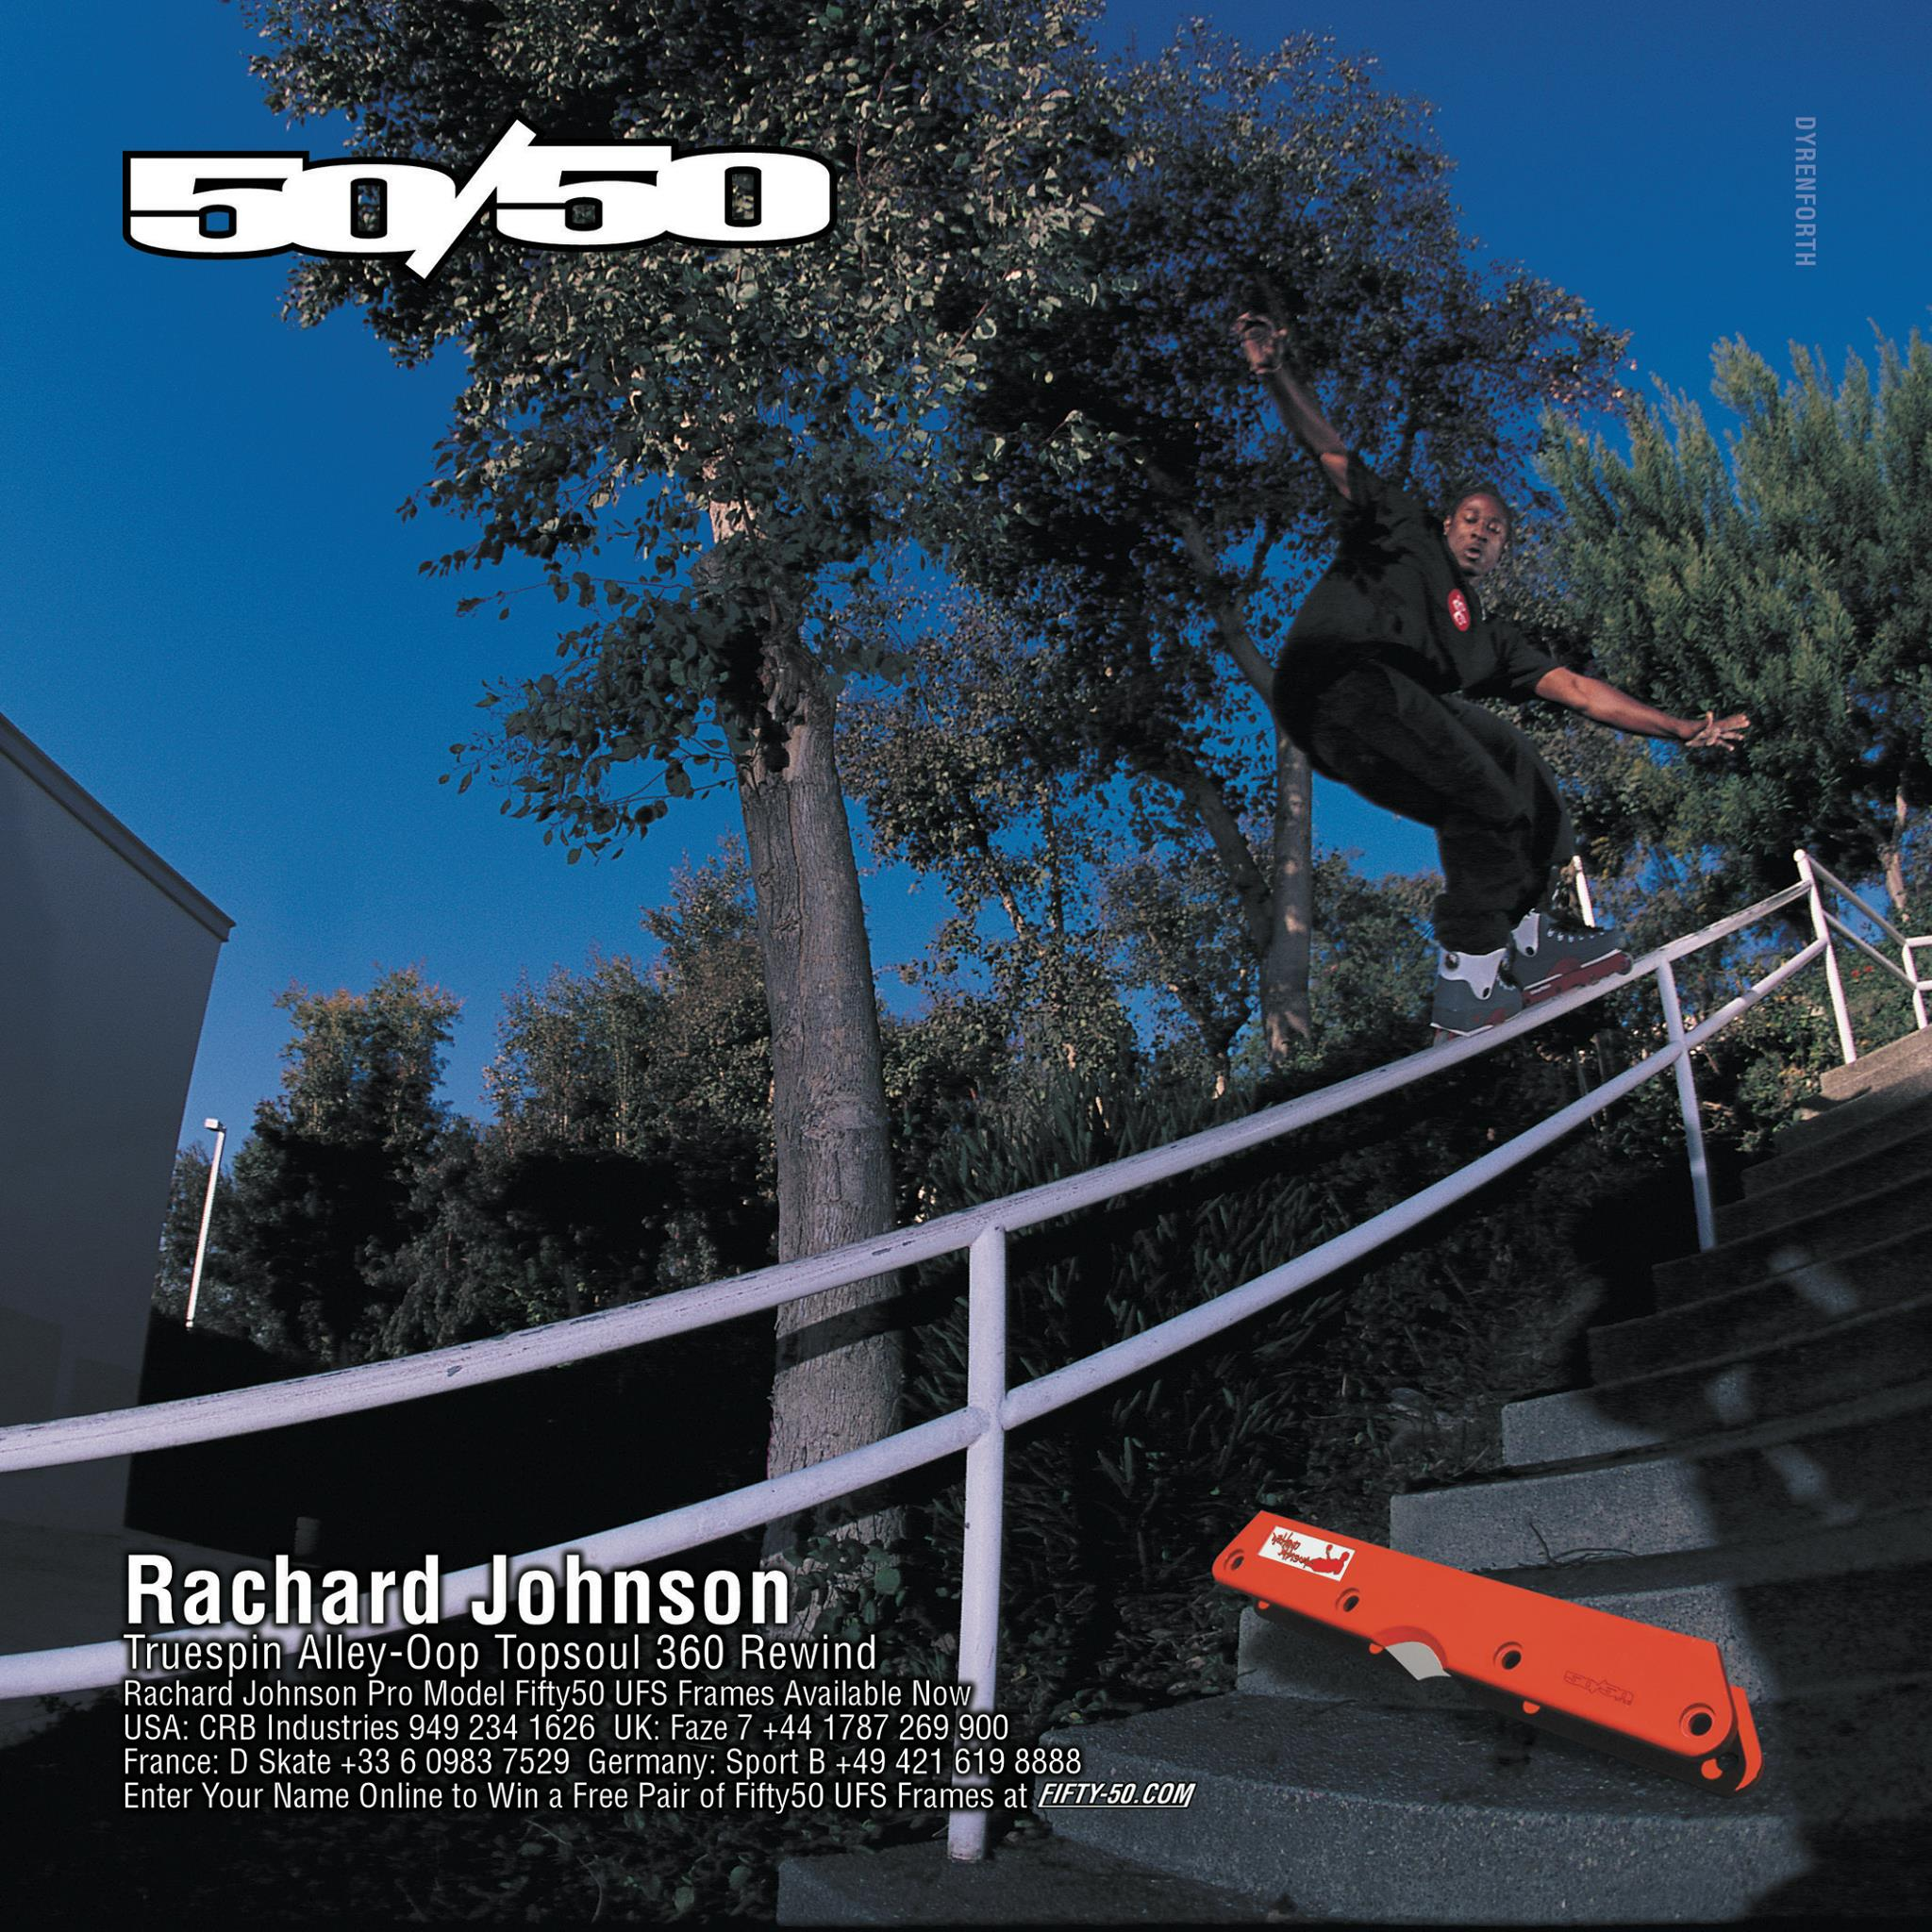 Rachard was one of the few skaters to have two Pro Model frame ads, this one showing in Europe.